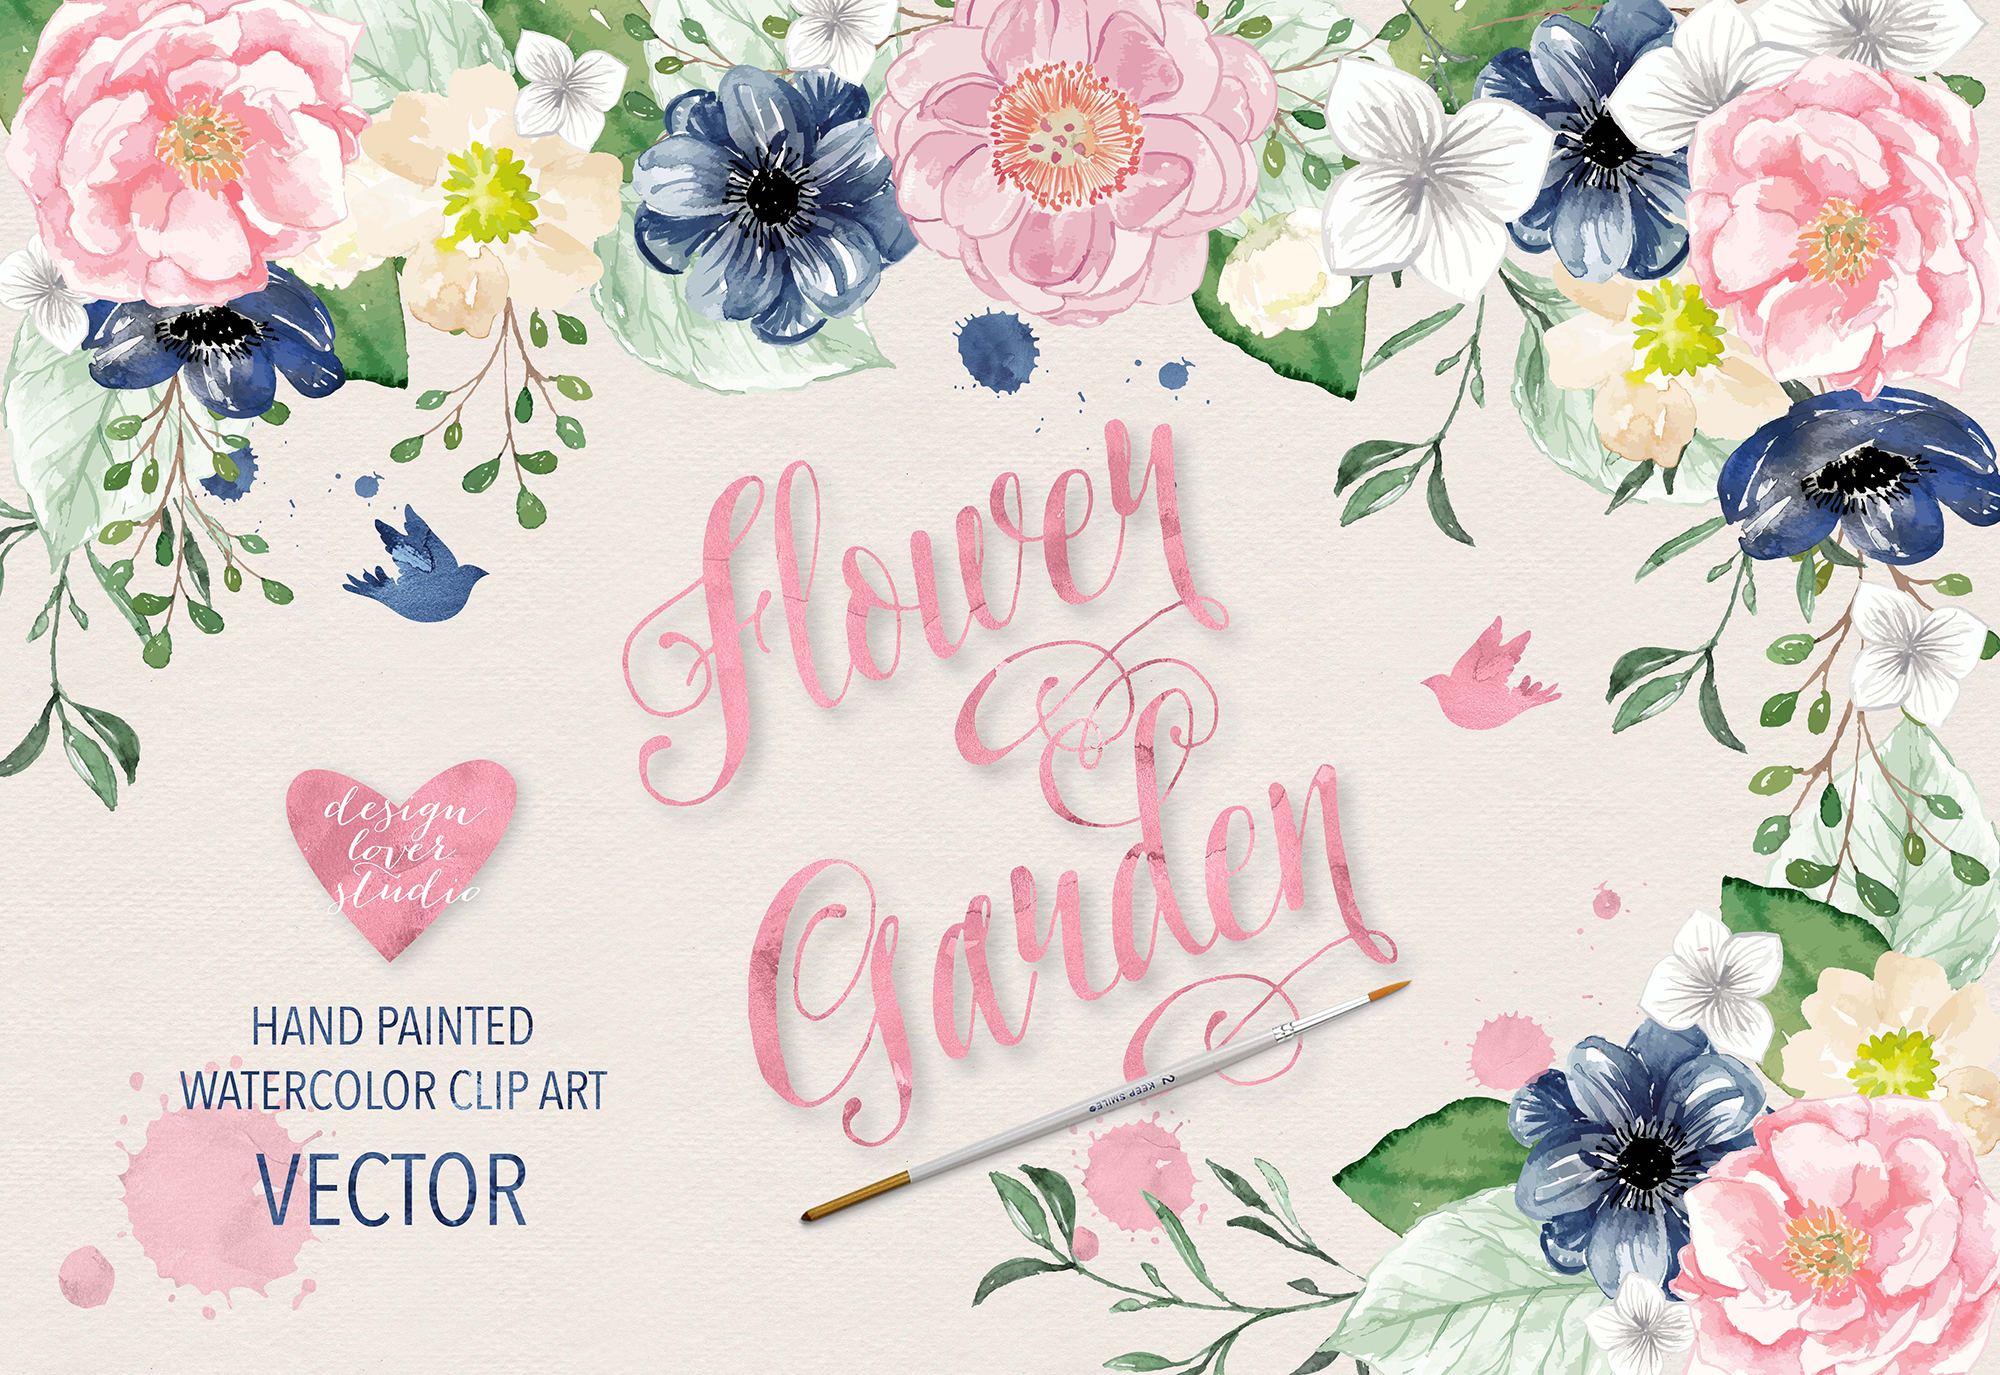 2000x1375 Vector Watercolor Navy Blue And Pink Flower Garden Clipart